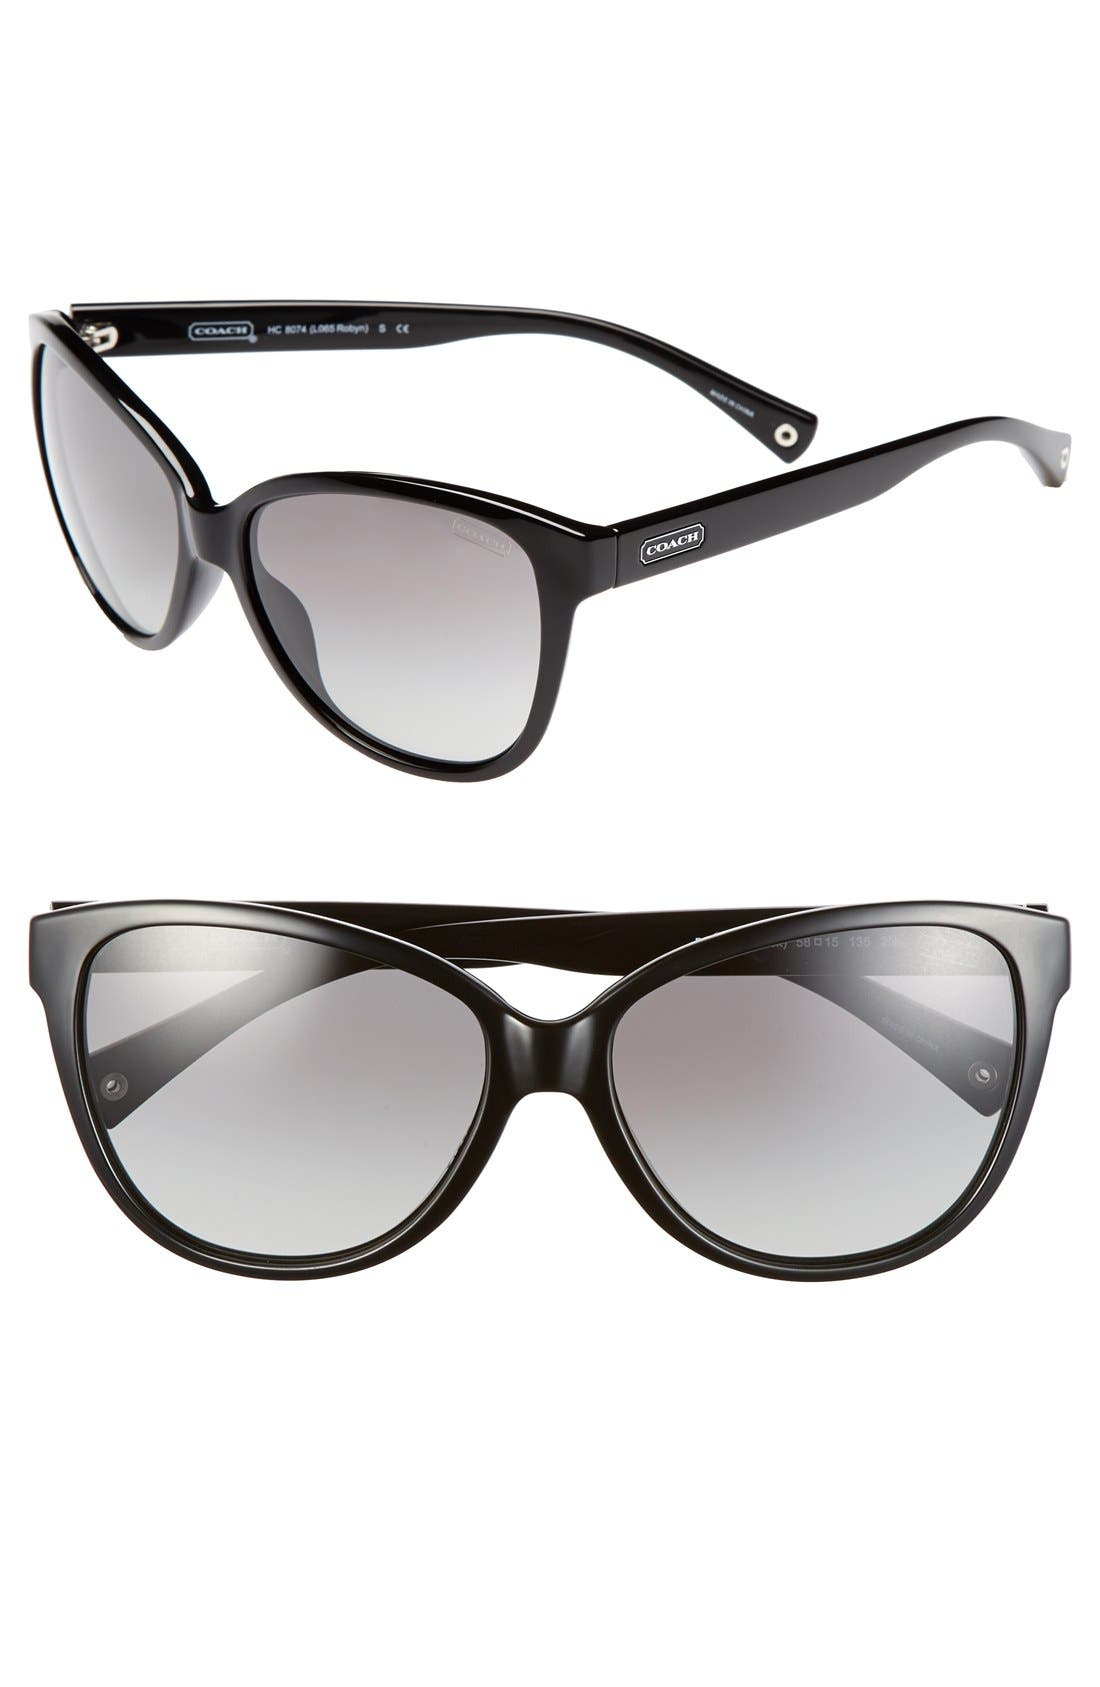 Main Image - COACH 58mm Cat Eye Sunglasses